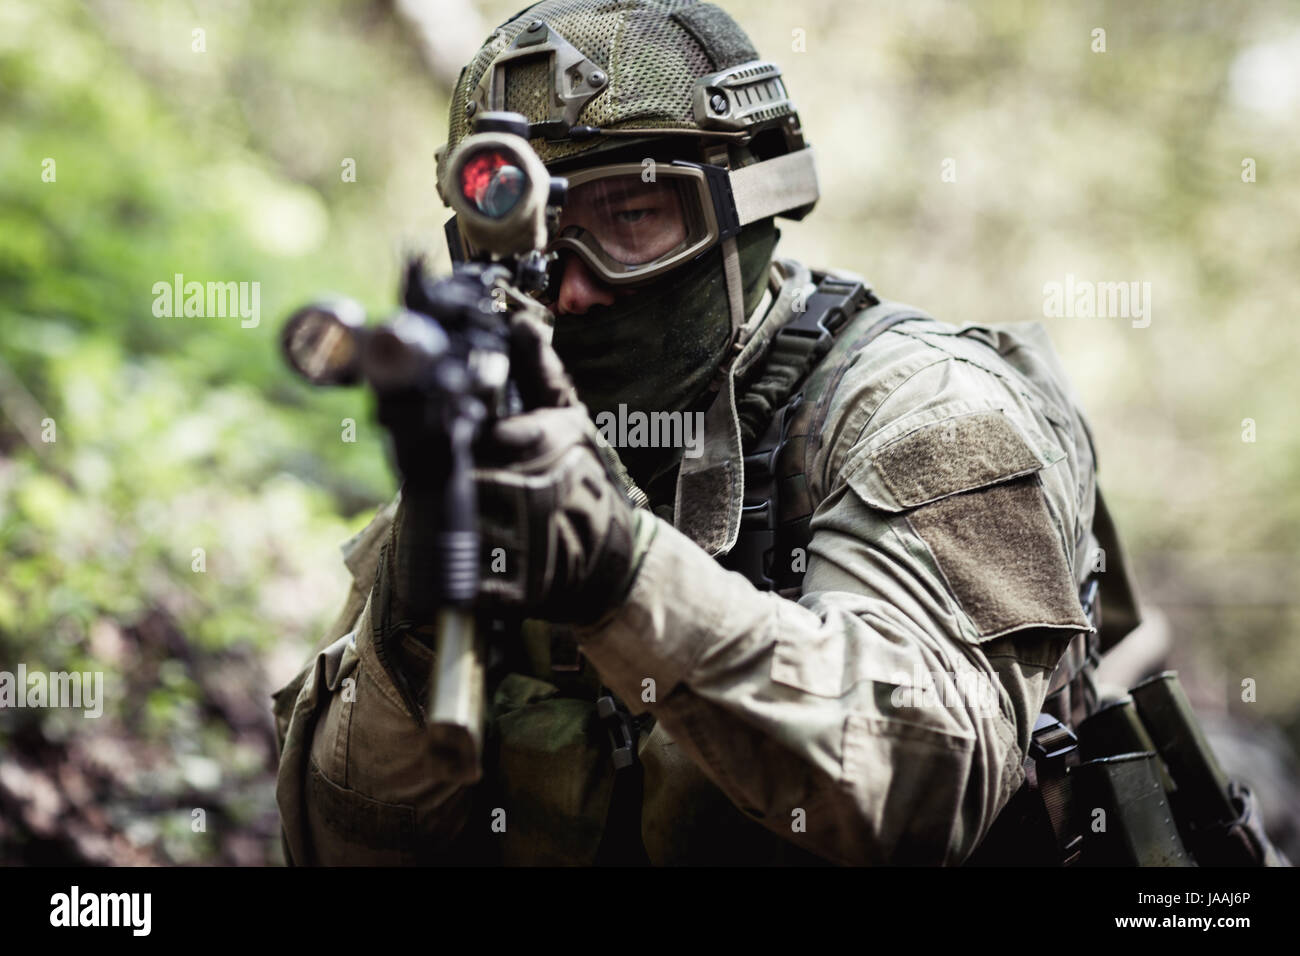 Photo of sniper in woods - Stock Image